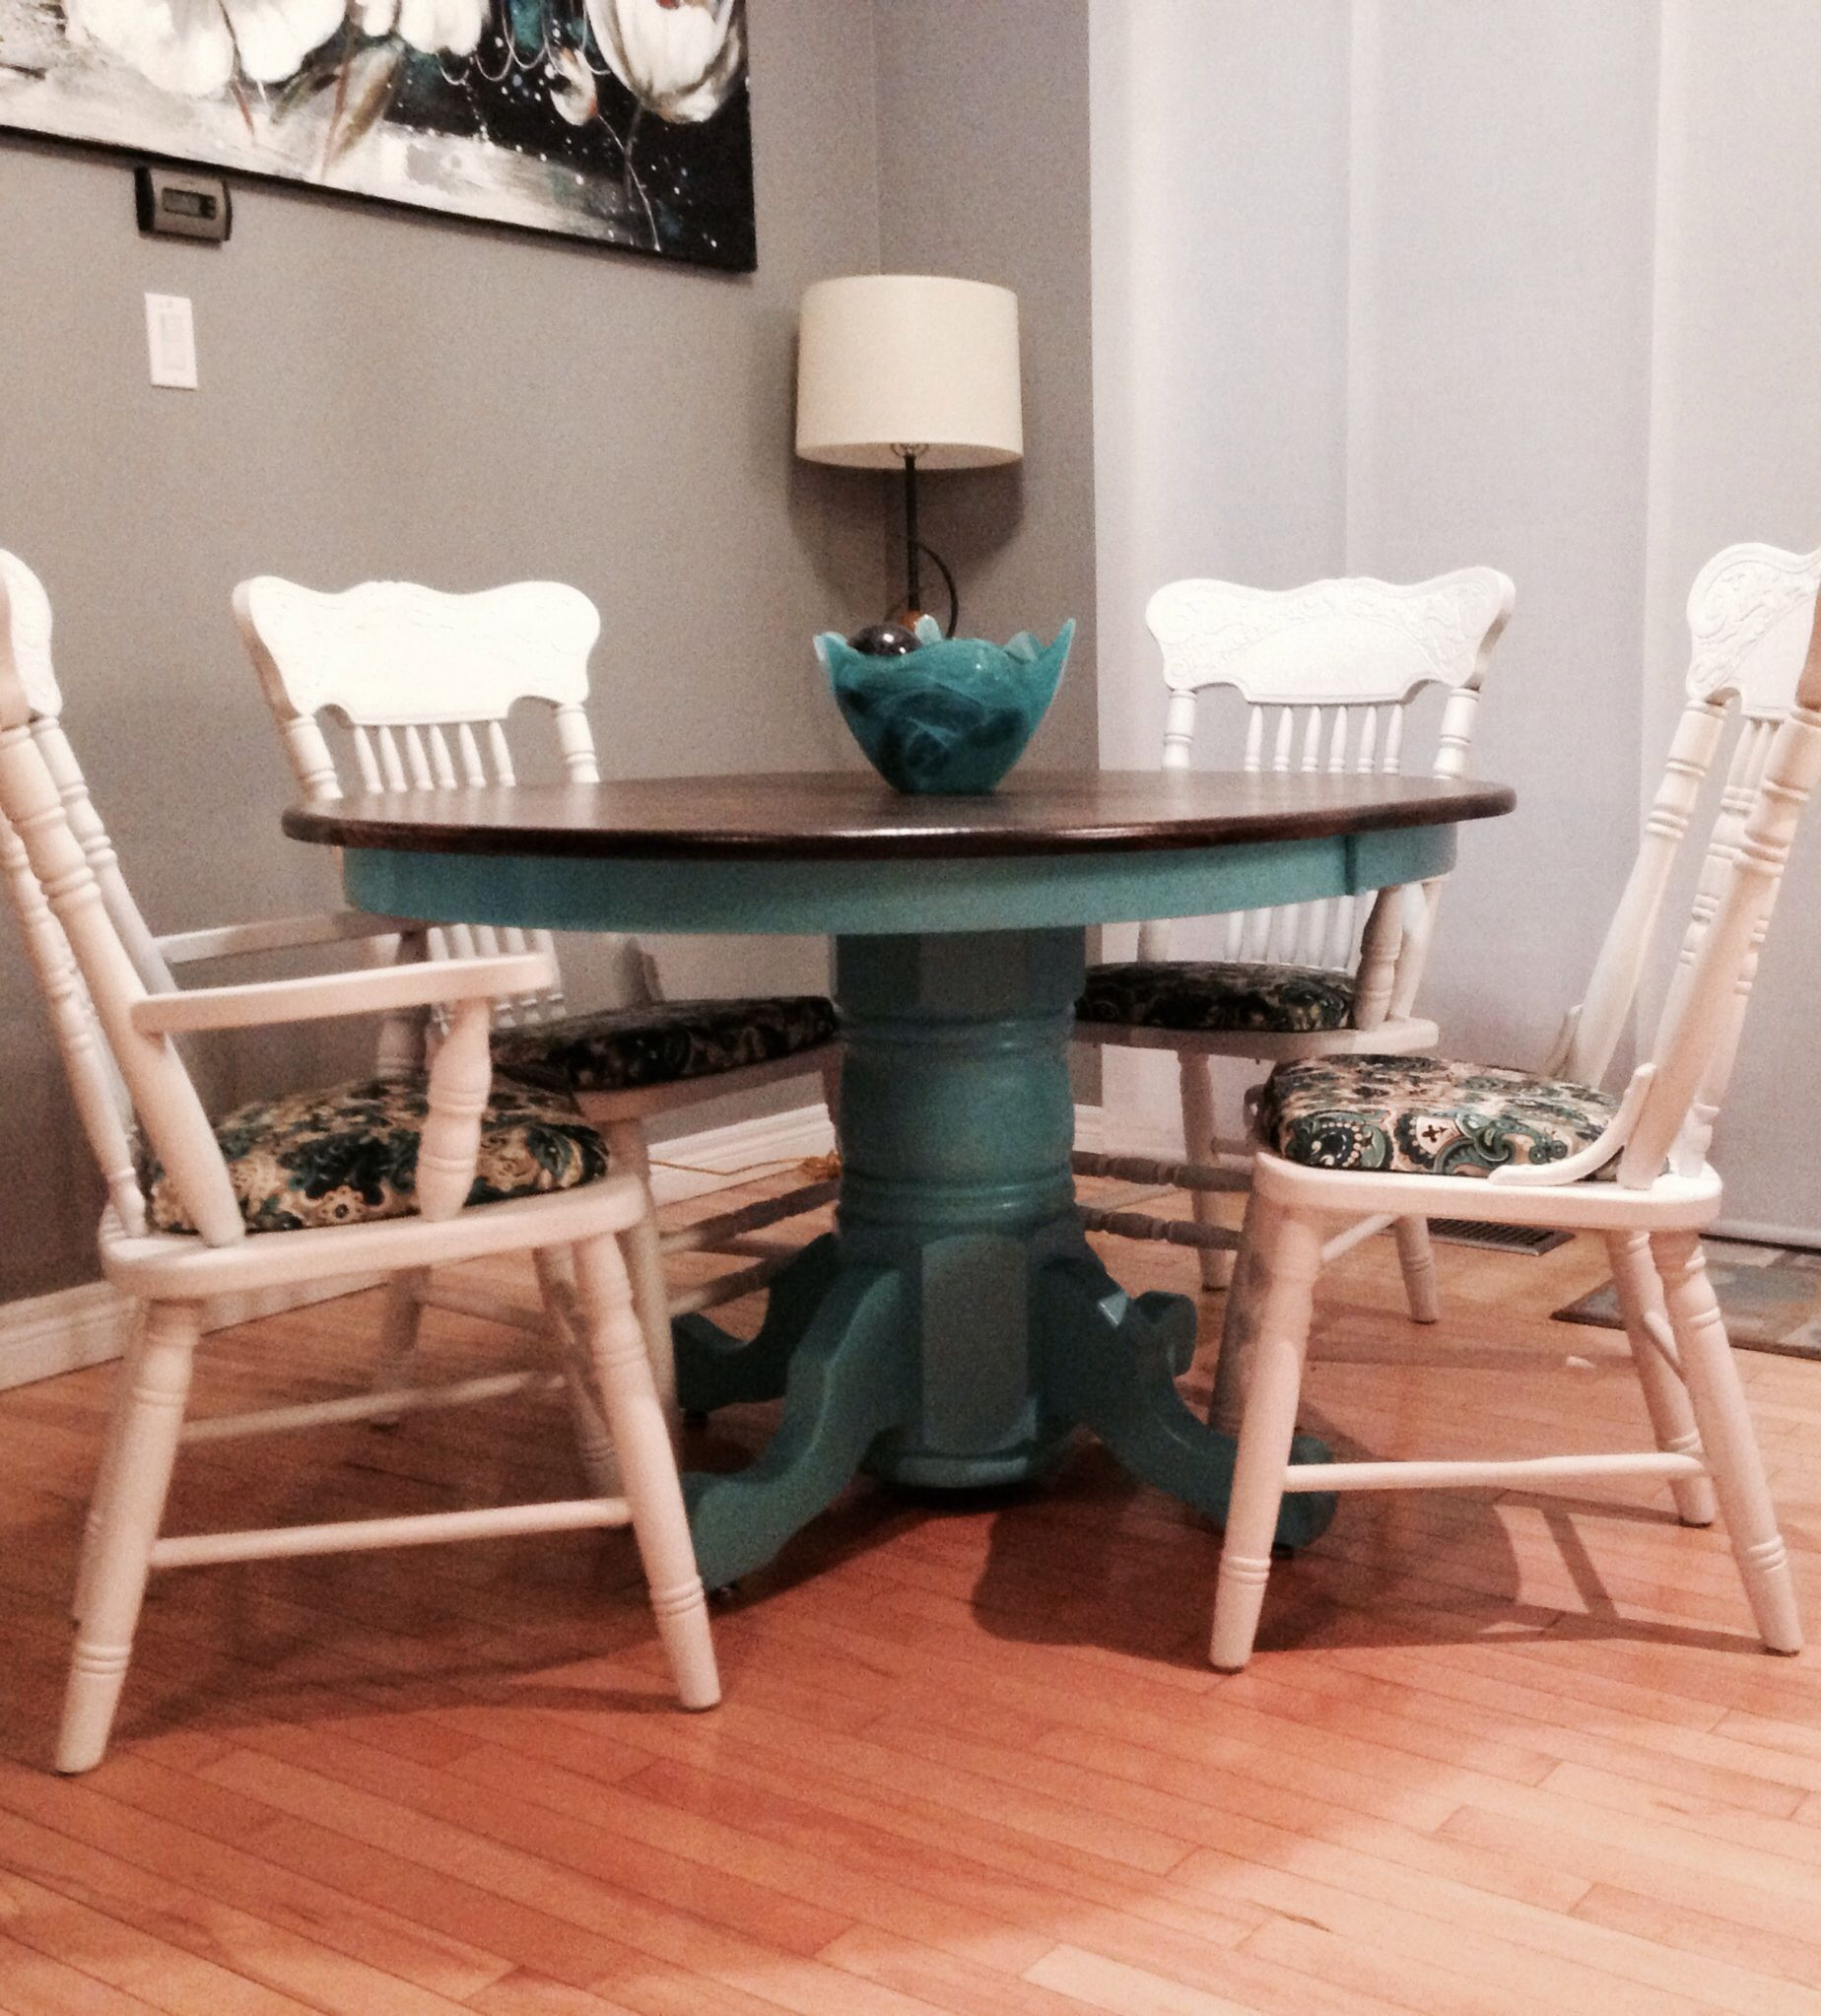 Our Kitchen Table Makeover We Used Rustoleum Chalk Paint In Linen White And Ebony Wood Stain Seal Kitchen Table Makeover Diy Kitchen Table Kitchen Table Redo